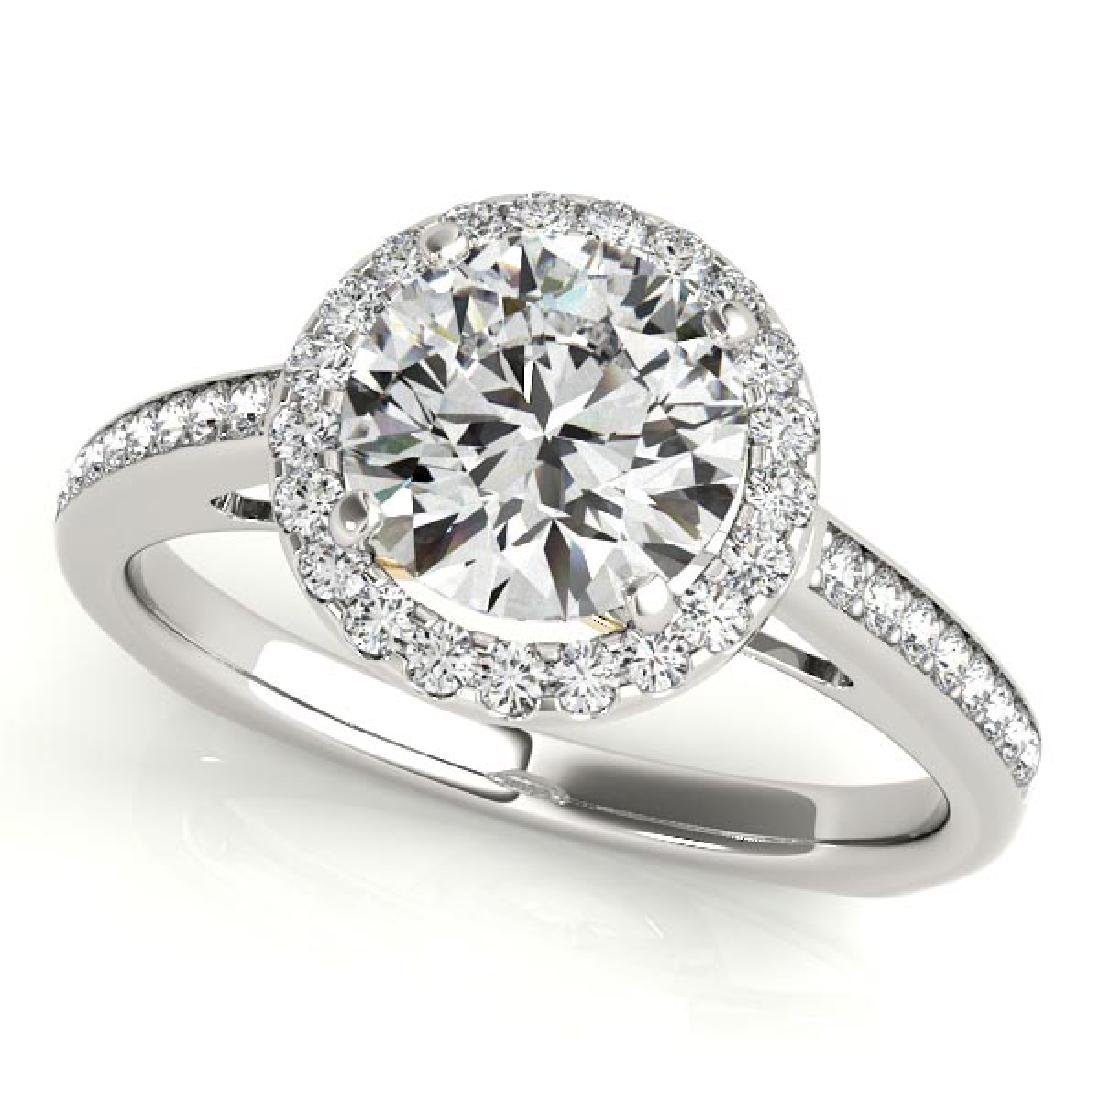 CERTIFIED TWO TONE GOLD 1.16 CT G-H/VS-SI1 DIAMOND HALO